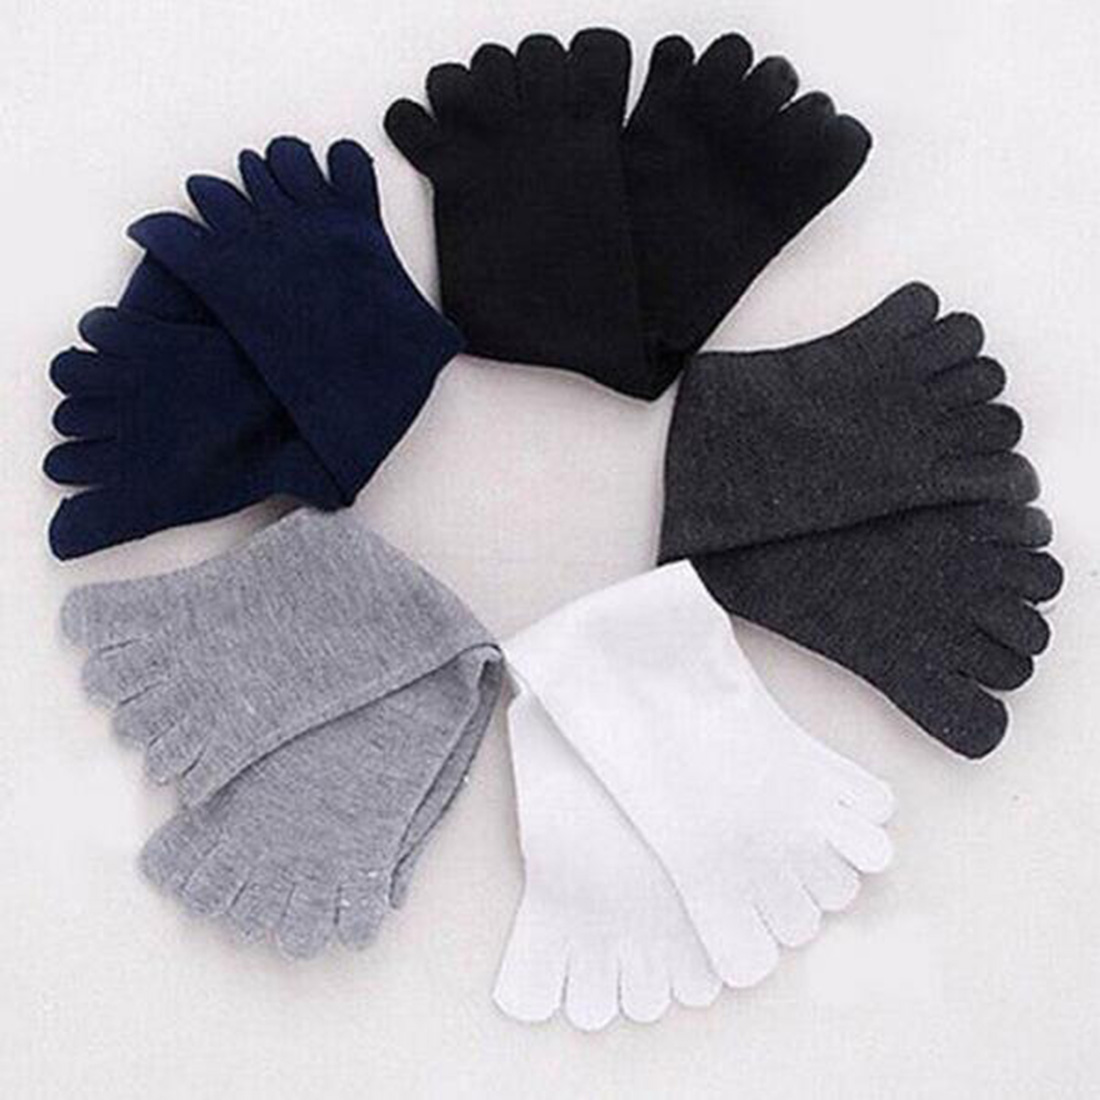 Warm Comfortable Cotton Toe Socks